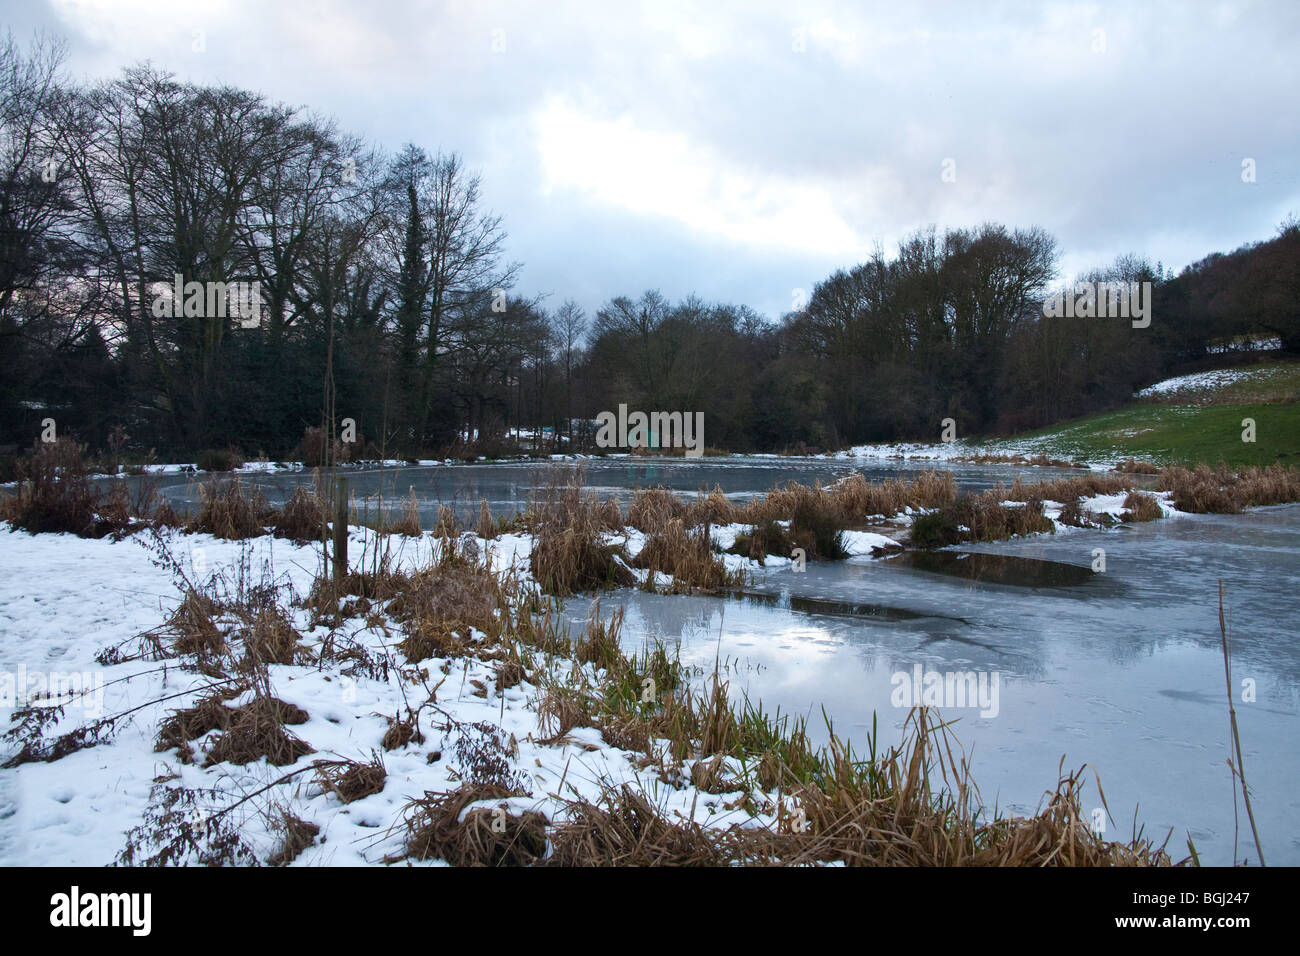 Barlow fishery trout lakes river Derbyshire England. Stock Photo